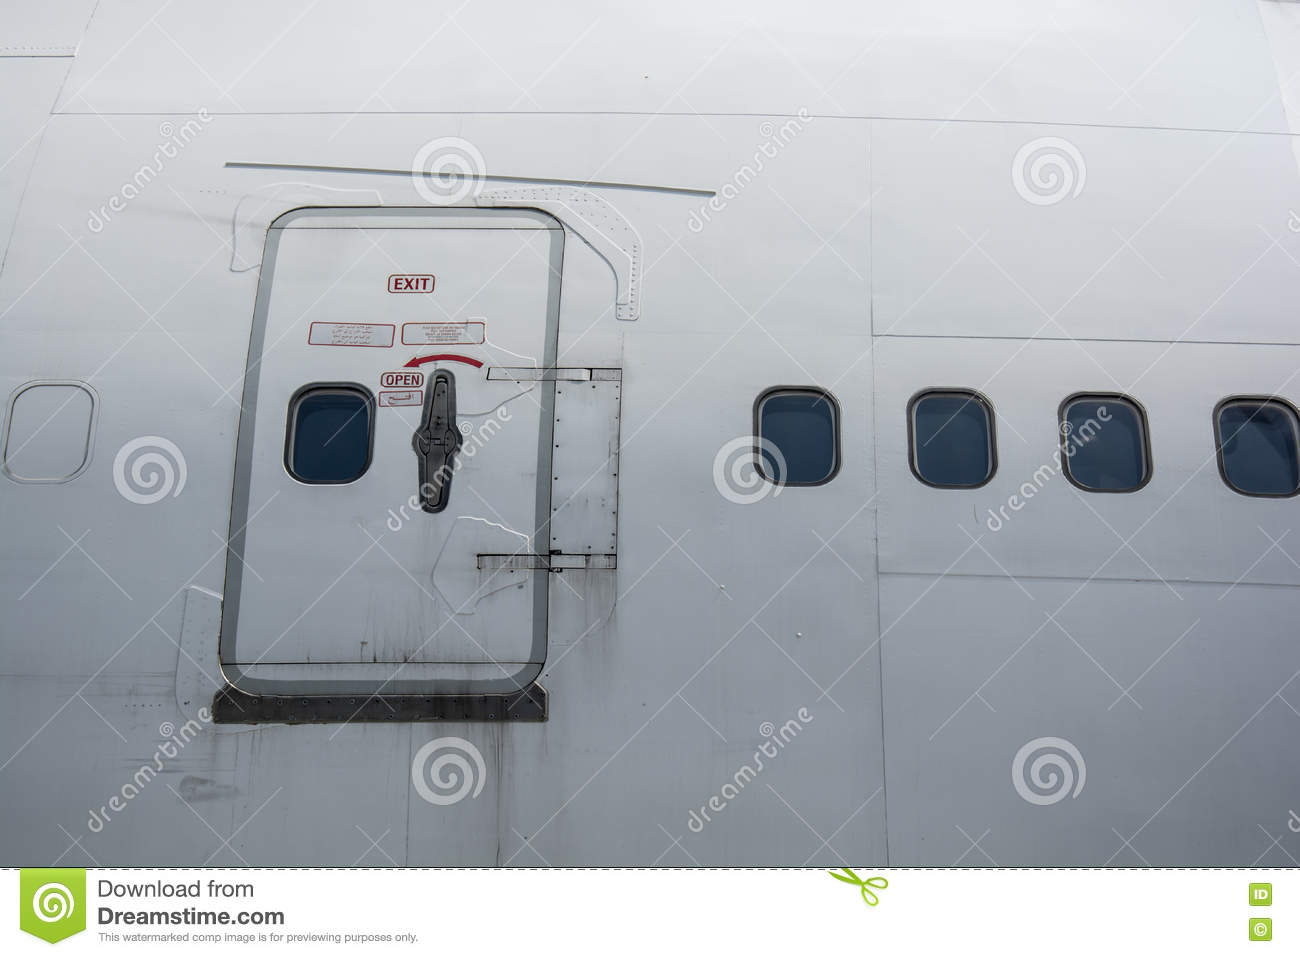 Emergency exit on the plane Royalty Free Stock Photo & Emergency Door Of A Plane Stock Photo - Image: 31978520 Pezcame.Com